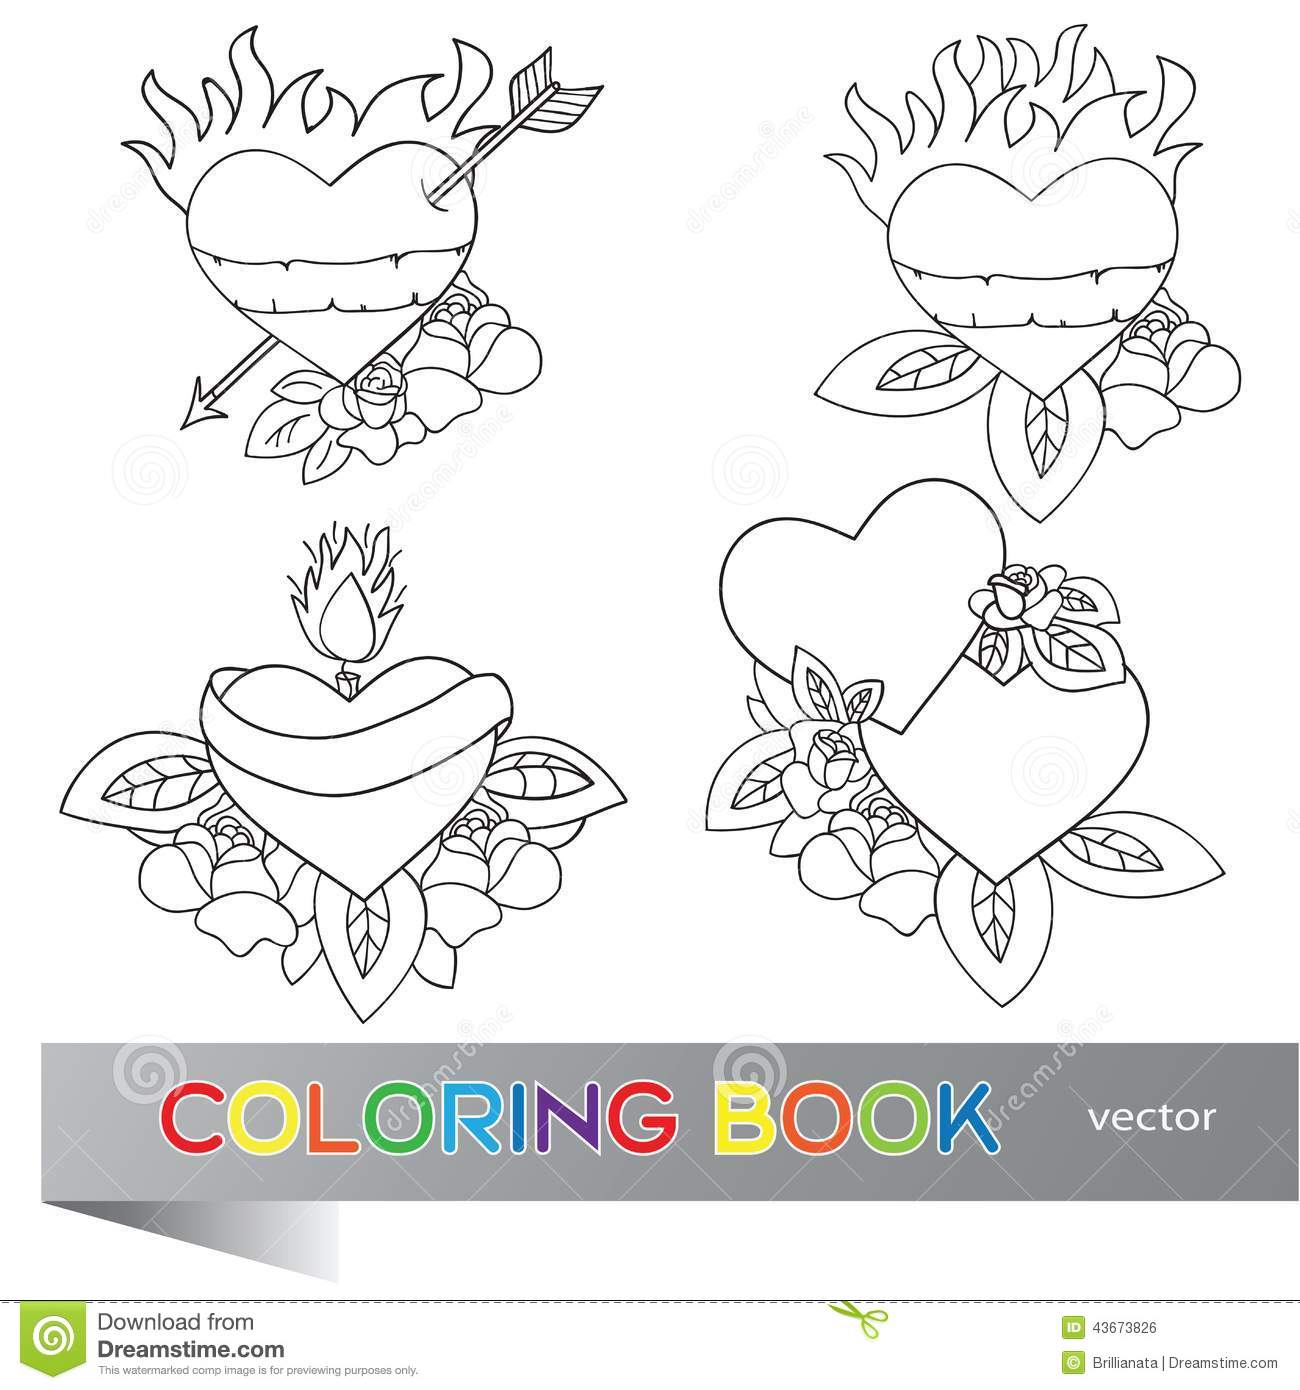 The coloring book tattoo - Heart Tattoo Design Coloring Book